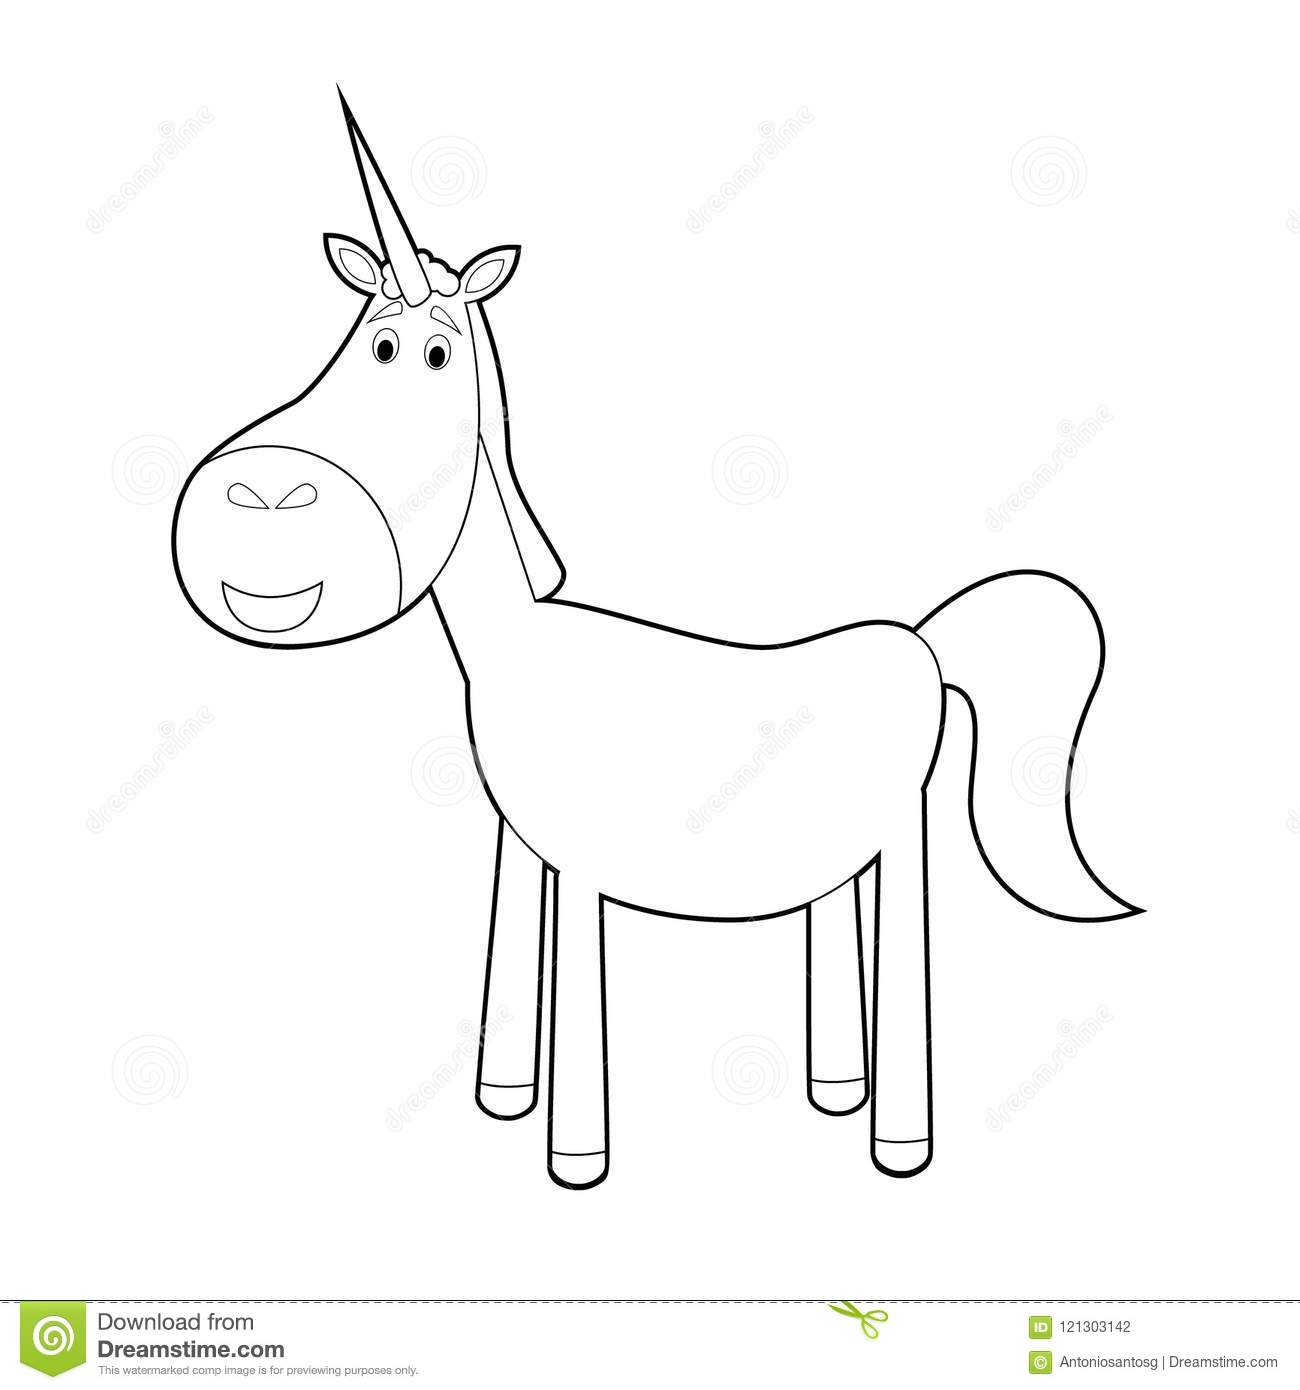 Easy Coloring Animals For Kids Unicorn Stock Vector Illustration